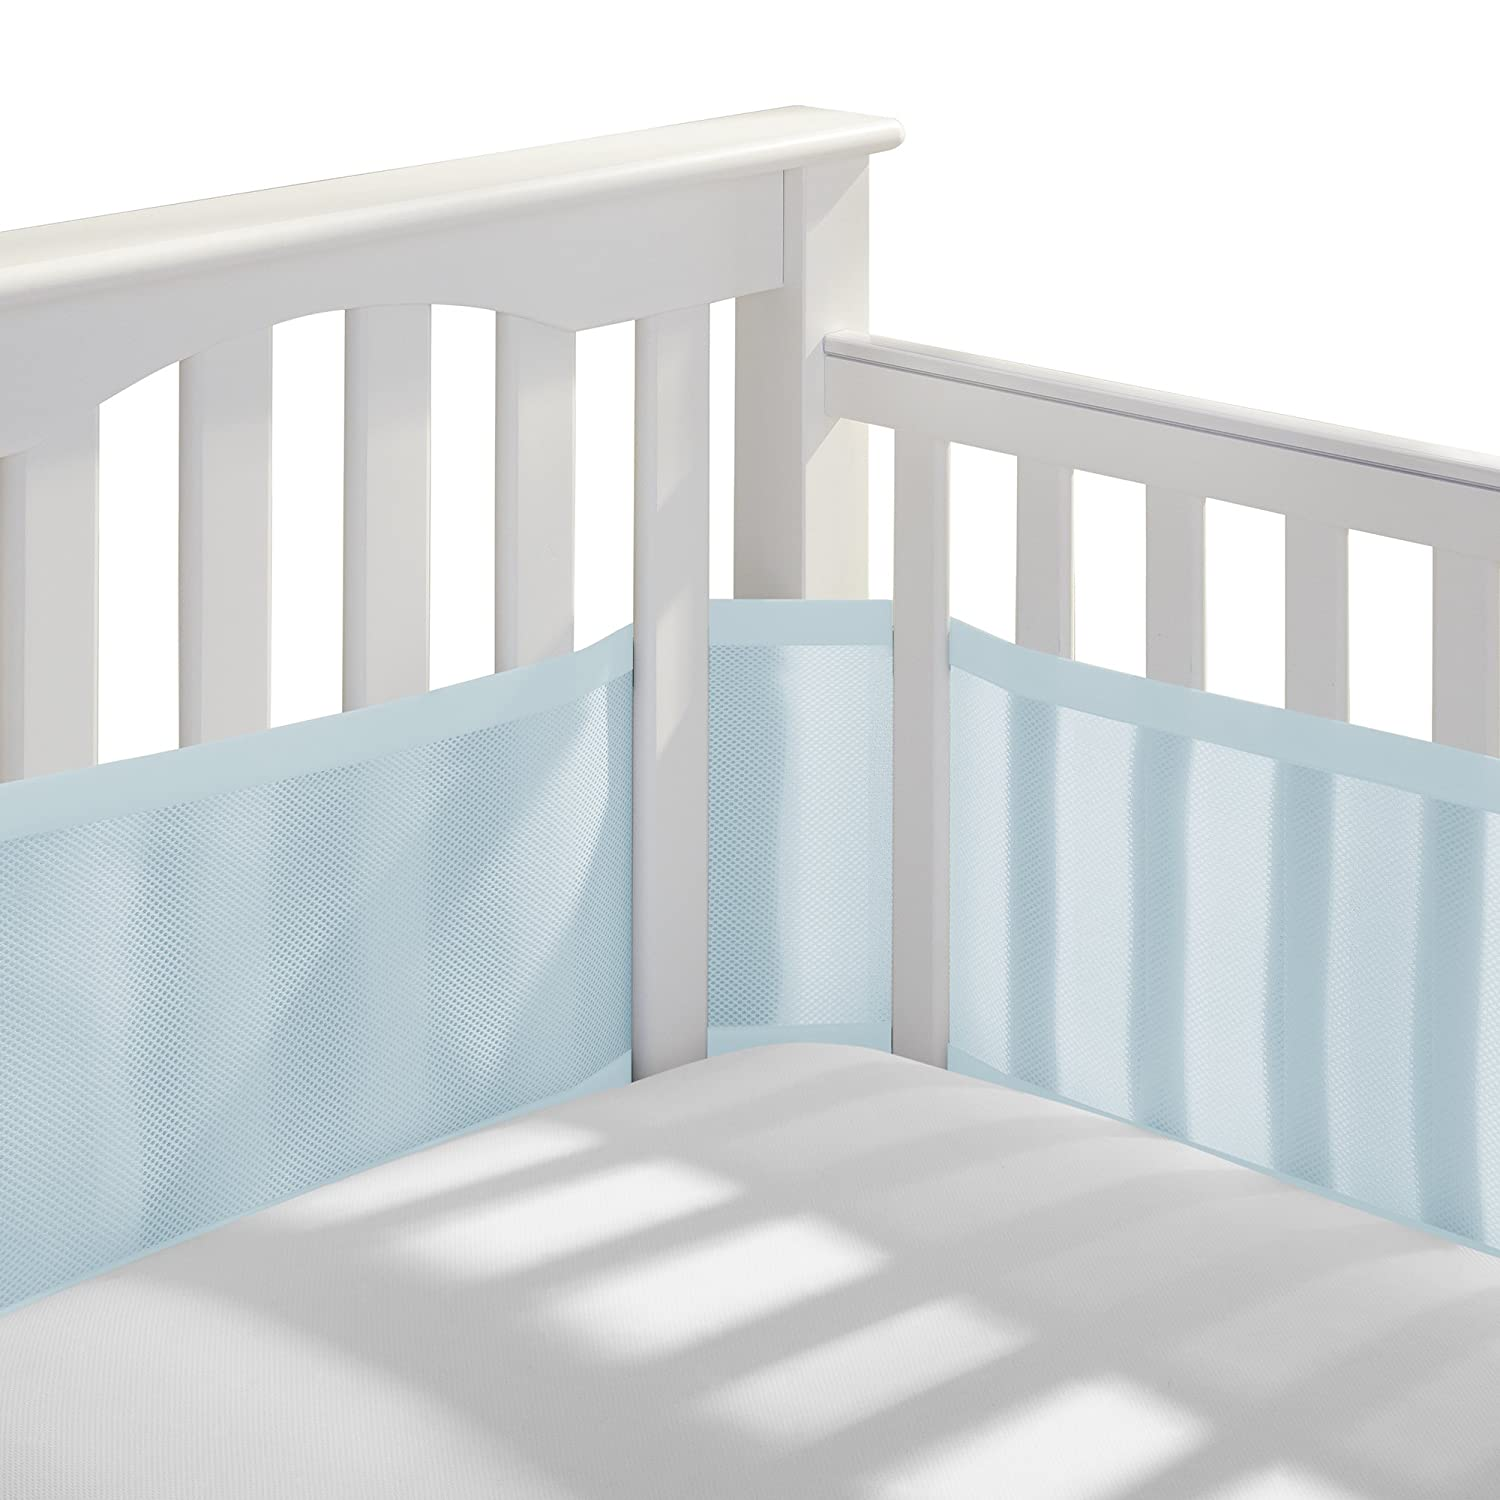 Amazoncom Breathablebaby Breathable Mesh Crib Liner, White (Mint Green) Baby